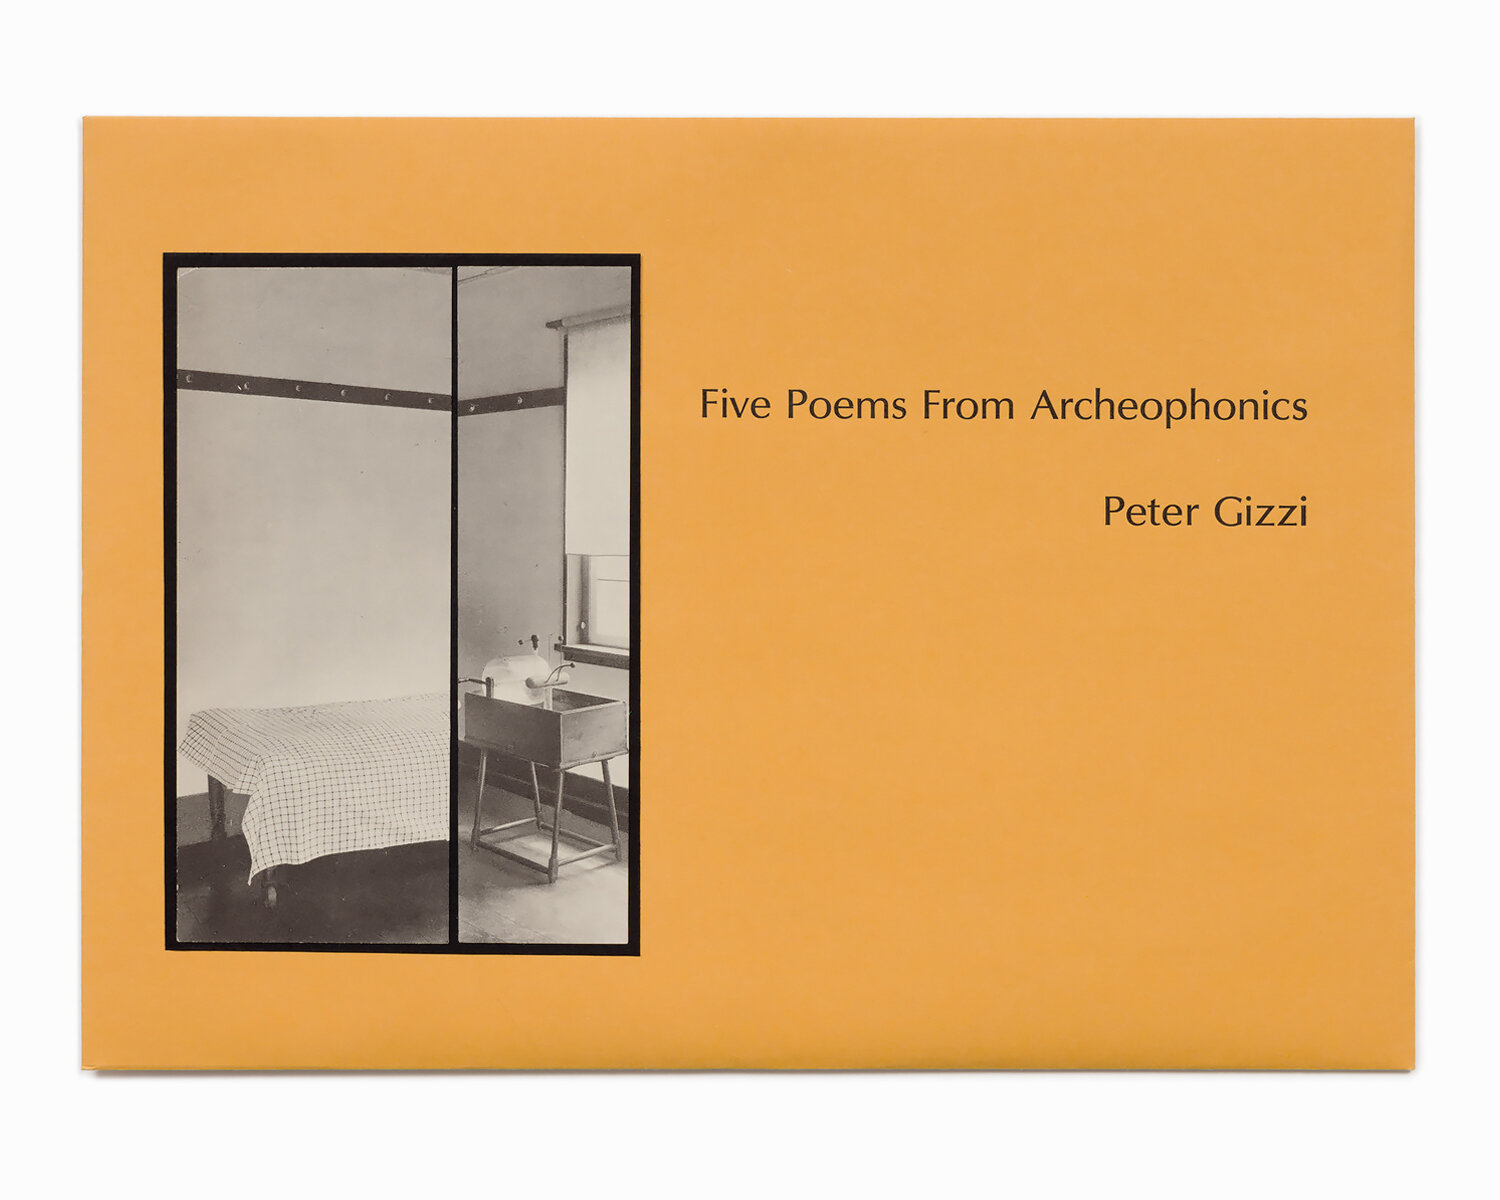 The-Brother-In-Elysium-Peter-Gizzi-Poems-from-Archeophonics-8.jpg